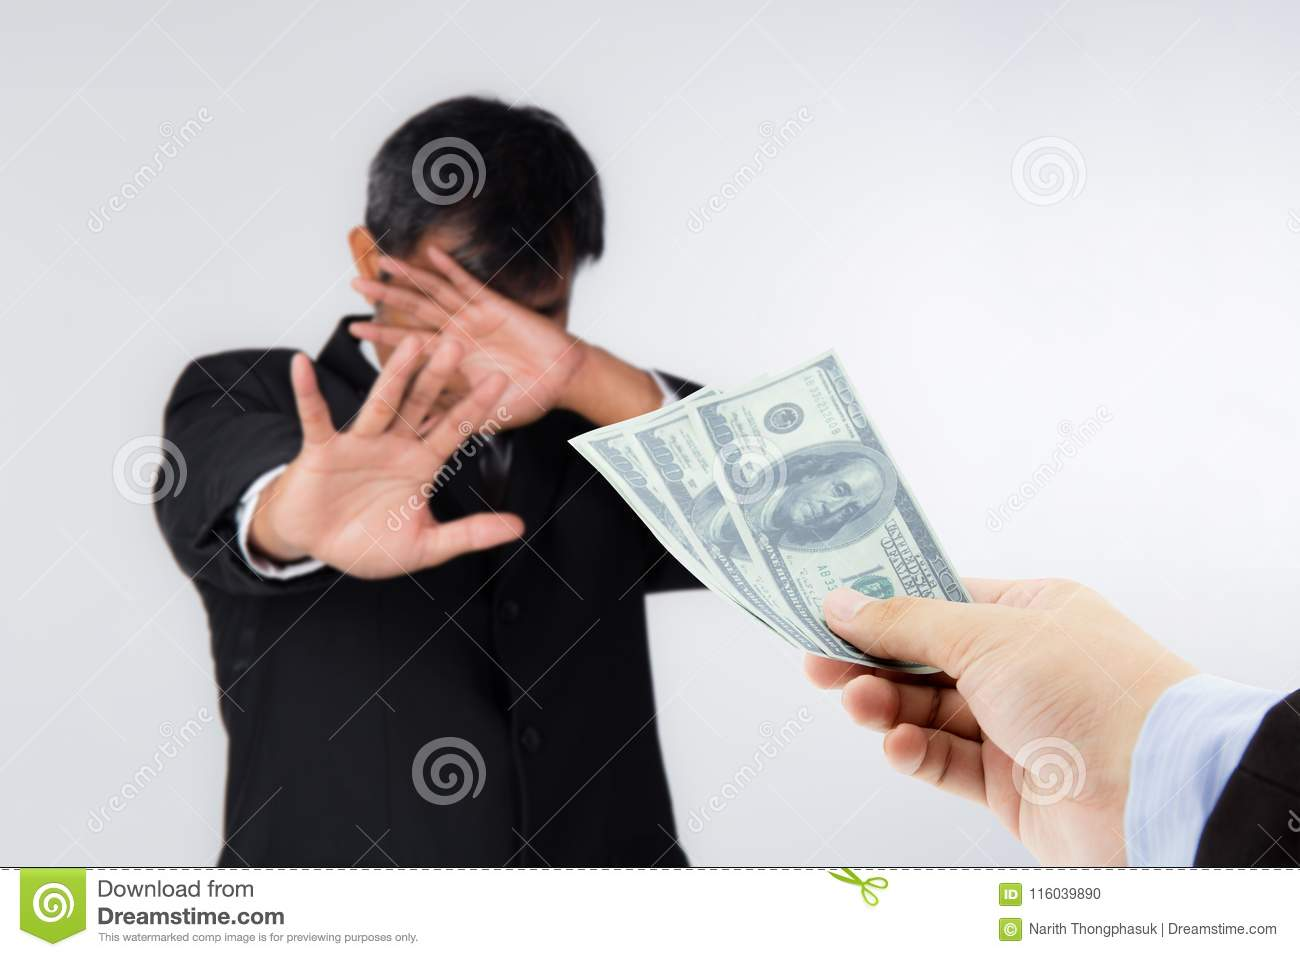 Businessman refuses to receive money - no bribery and corruption concept.